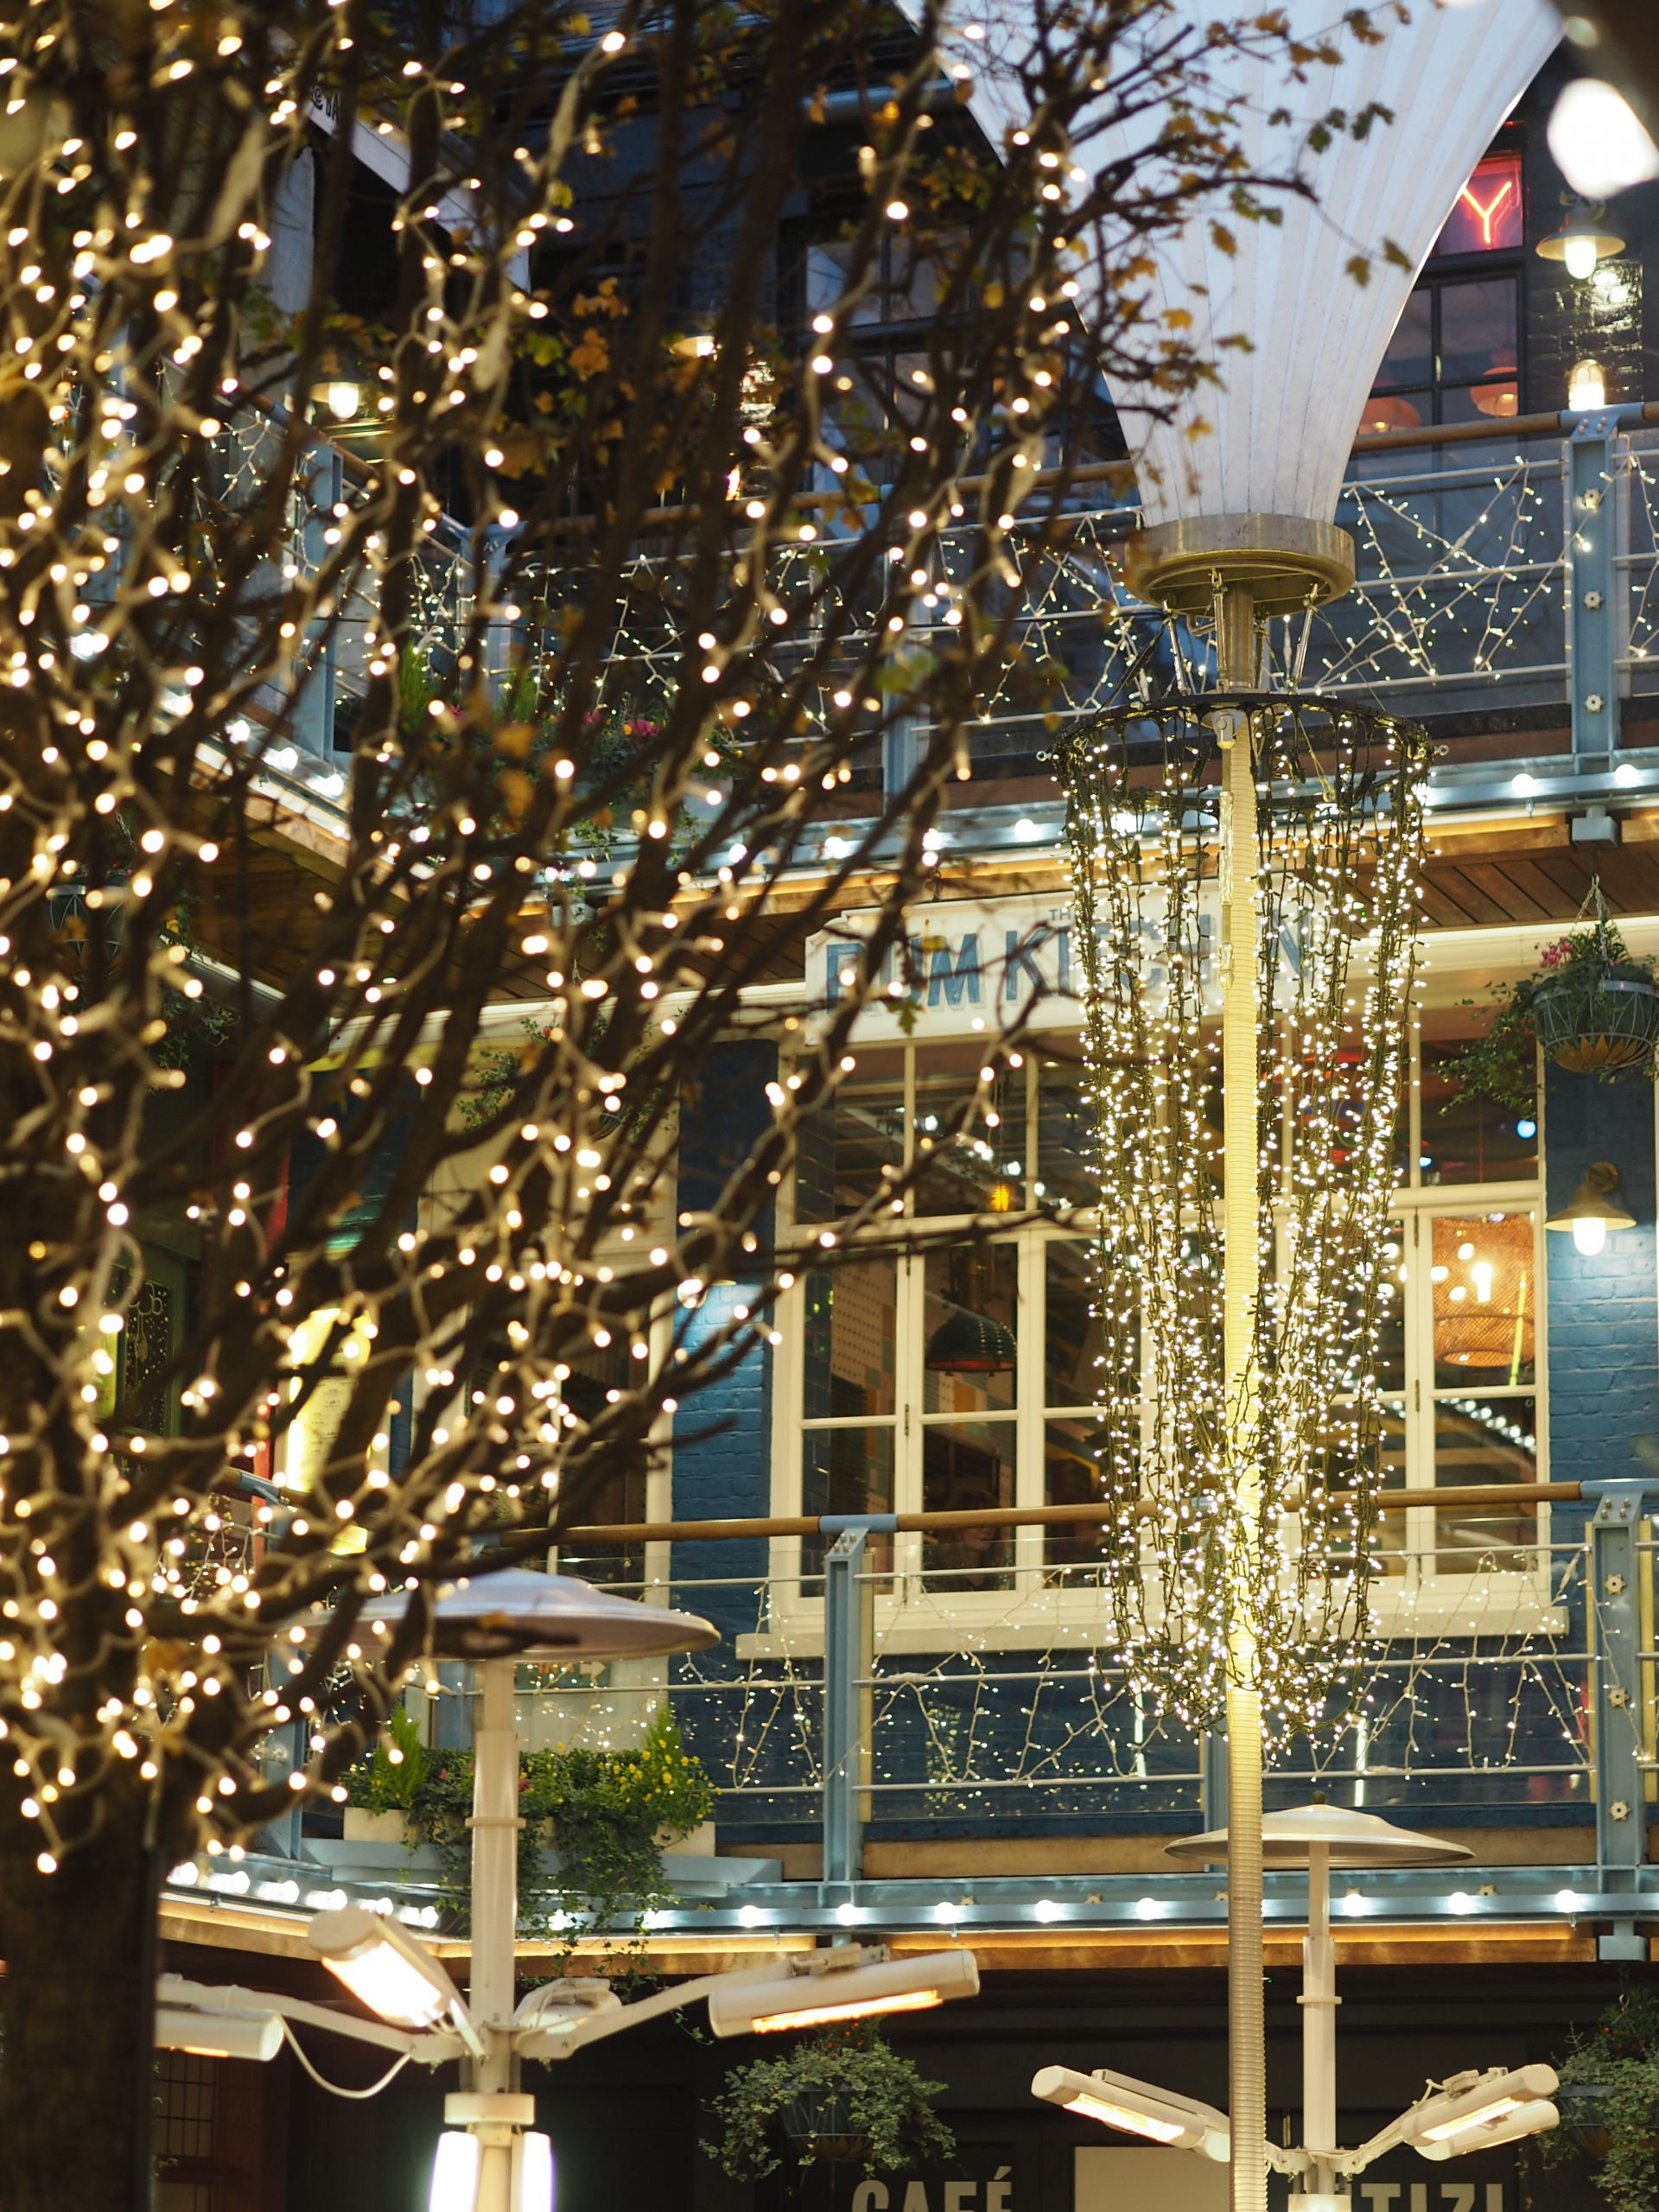 Festive Christmas lights in Kingly Court carnaby London